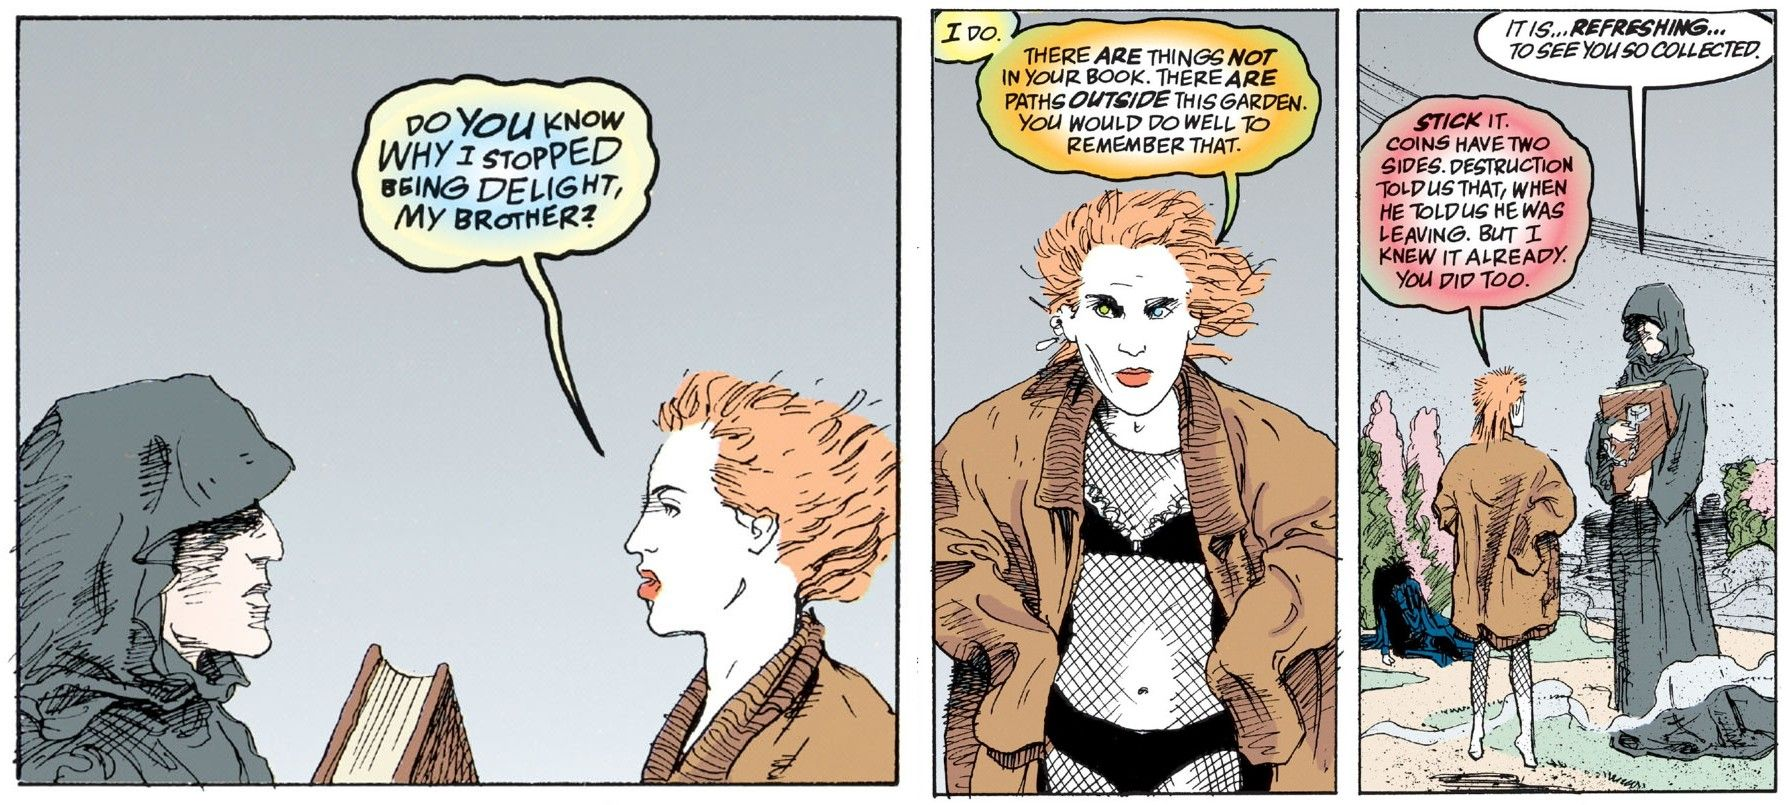 """3 comic panels from Sandman. in the first, Delirium asks her brother Dream, """"Do you know why I stopped being Delight, my brother?"""". In the second she says, """"I do. There are things not in your book. There are paths outside this garden. You would do well to remember that."""" In the final, he responds, """"It is... refreshing to see you so collected."""" She replies, """"Stick it. Coins have two sides Destruction told us that, when he told us he was leaving. But I knew it already. You did too."""""""